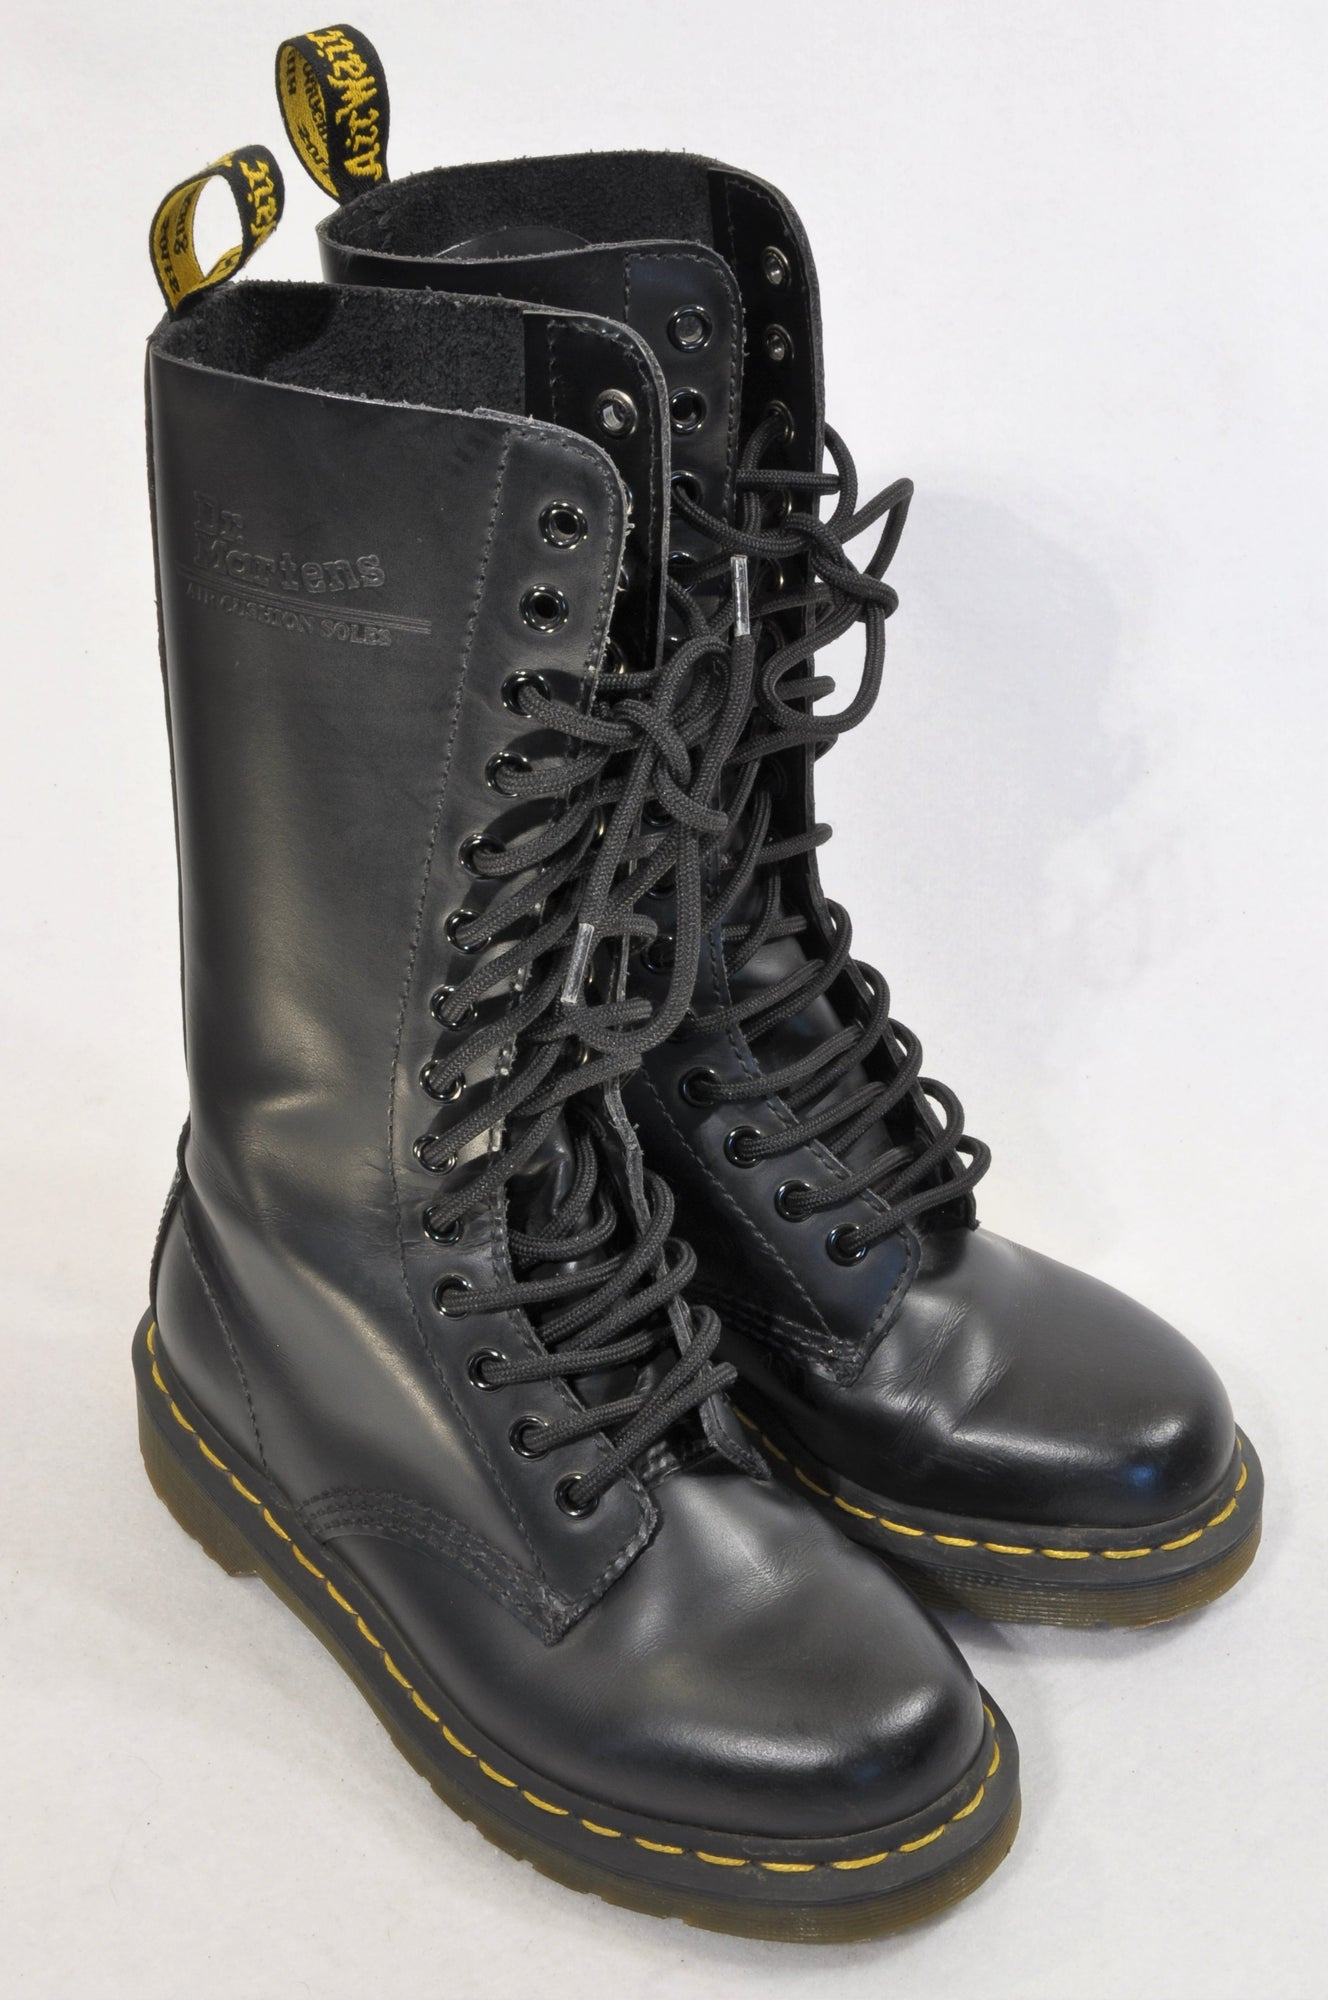 Dr. Martens Size 3 14 Eye Leather Black Boots Unisex 7-16 years